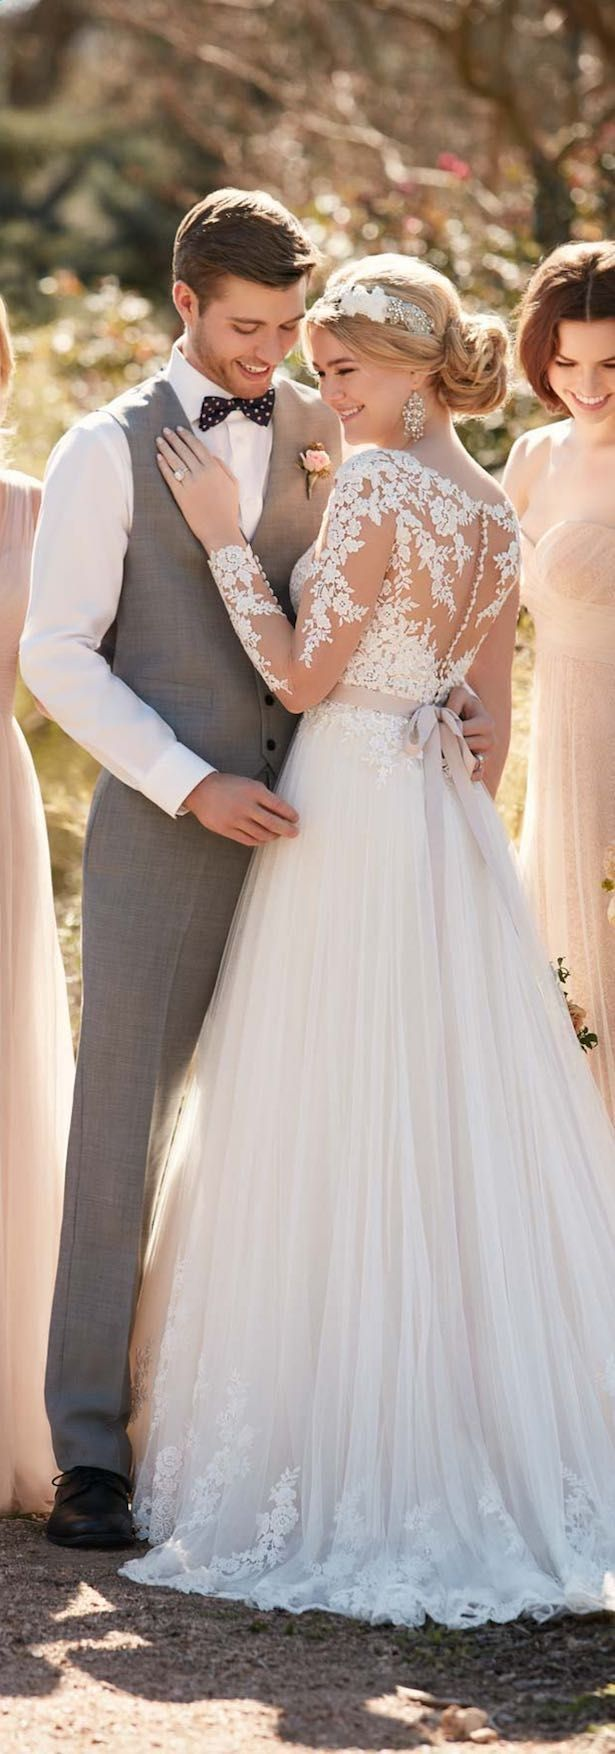 33 Beautiful Lace Wedding Dresses You Will Love